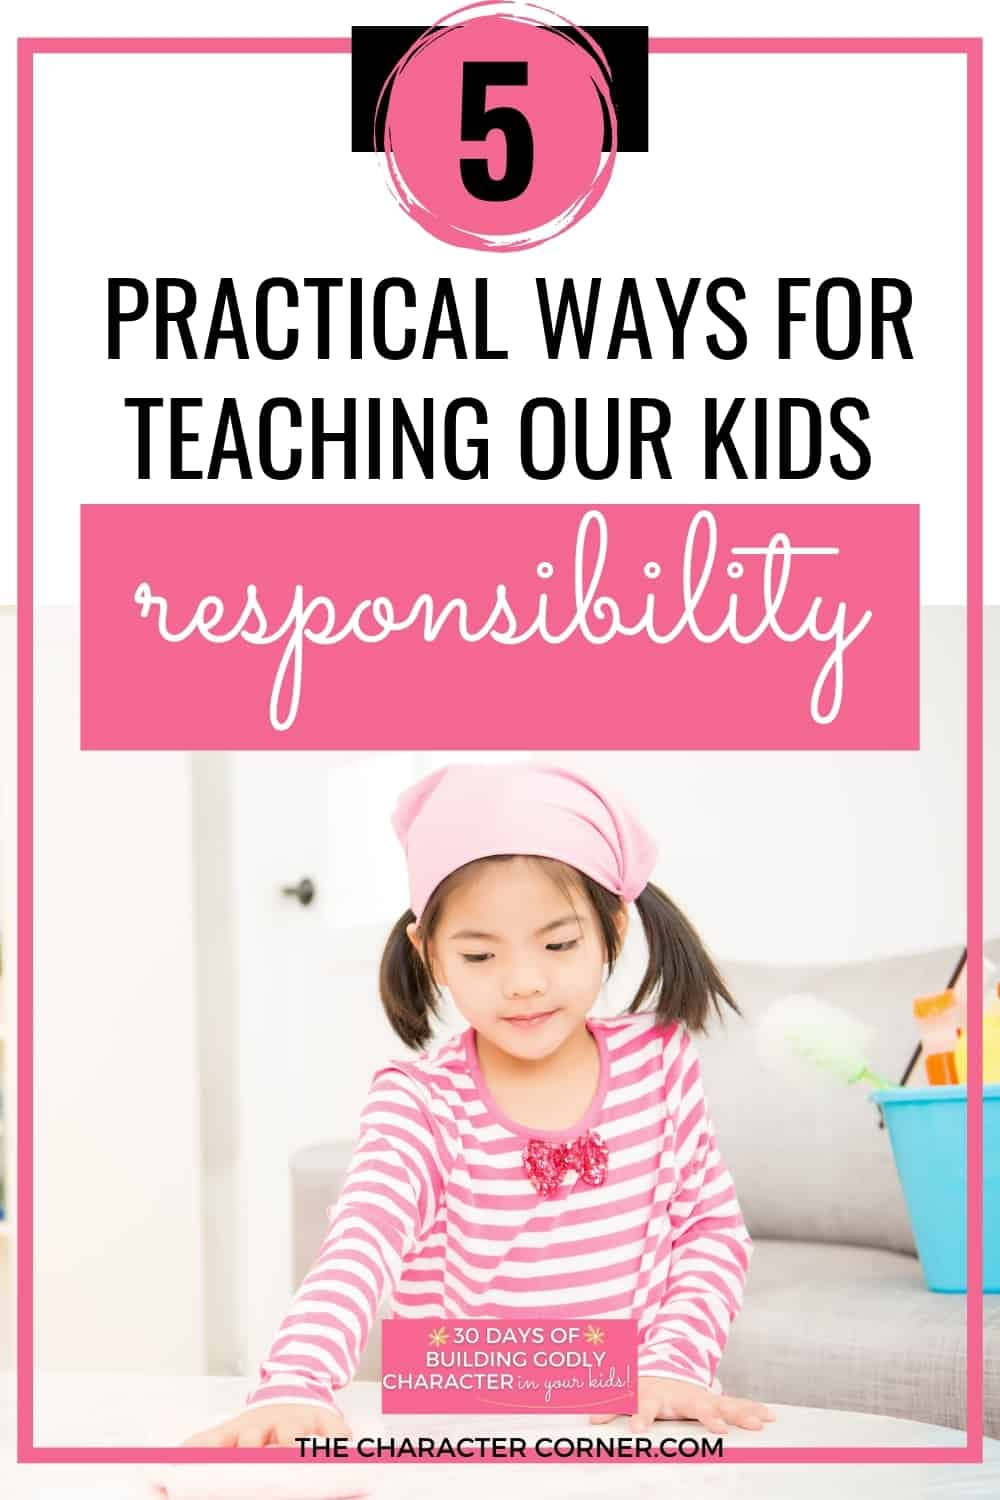 Happy little girl helping her family with chores text on image reads: 5 Practical Ways To Teach Responsibility To Our Kids